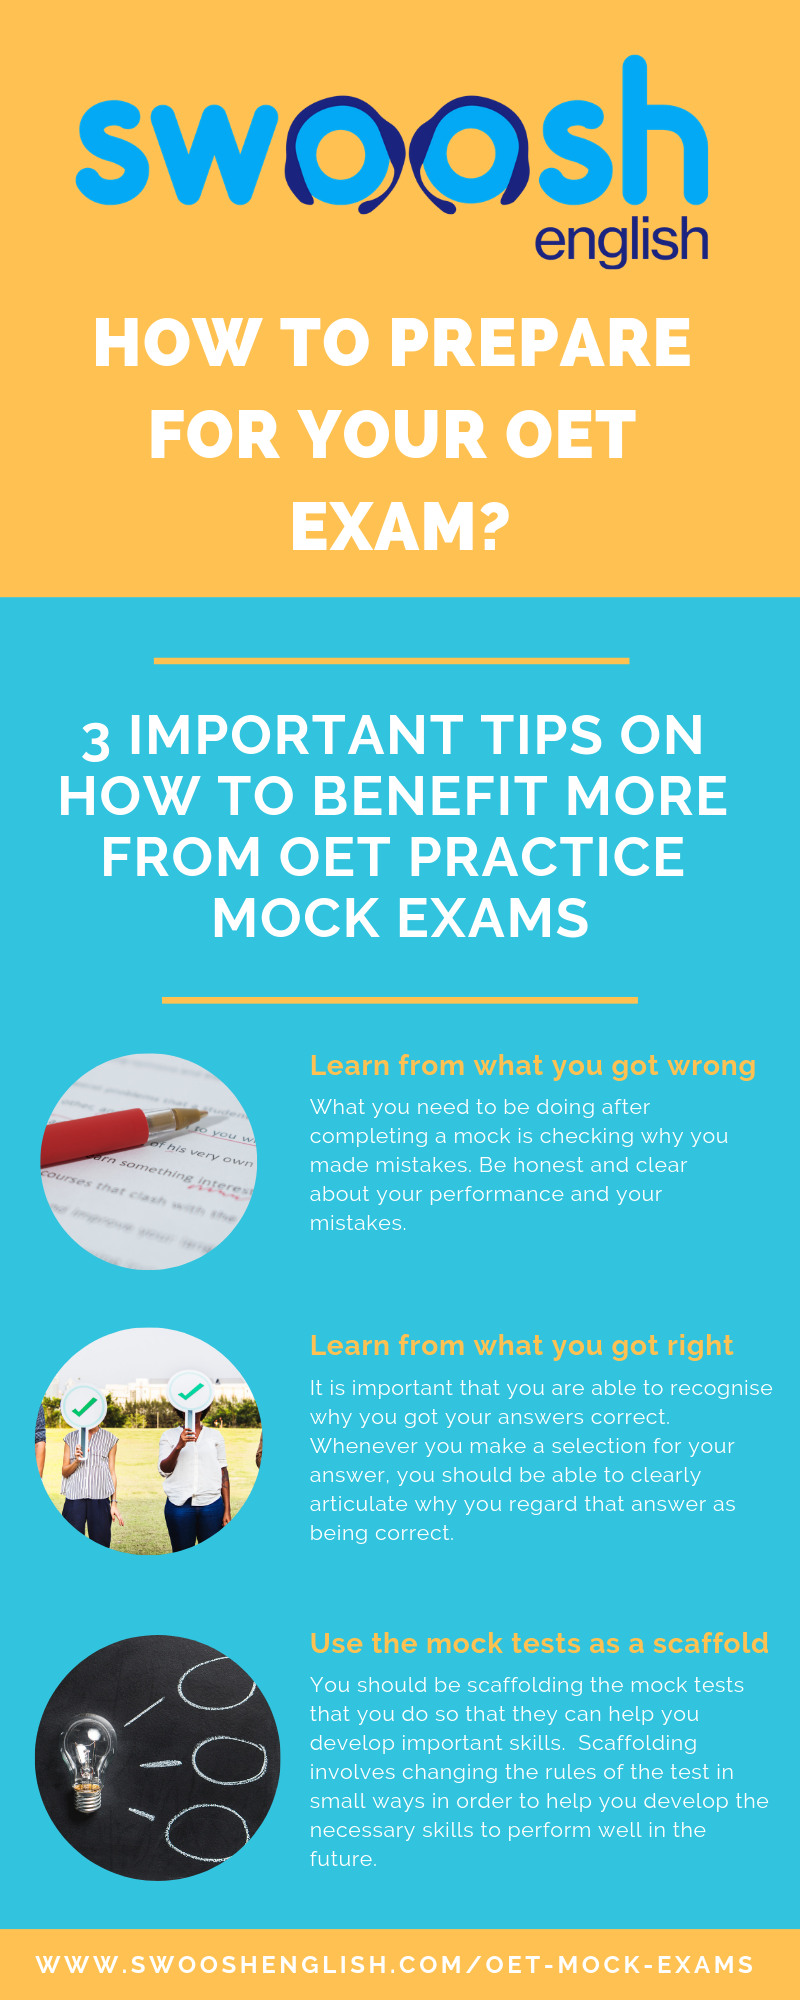 How To Prepare For Your OET Exam? 3 Important Tips on How to